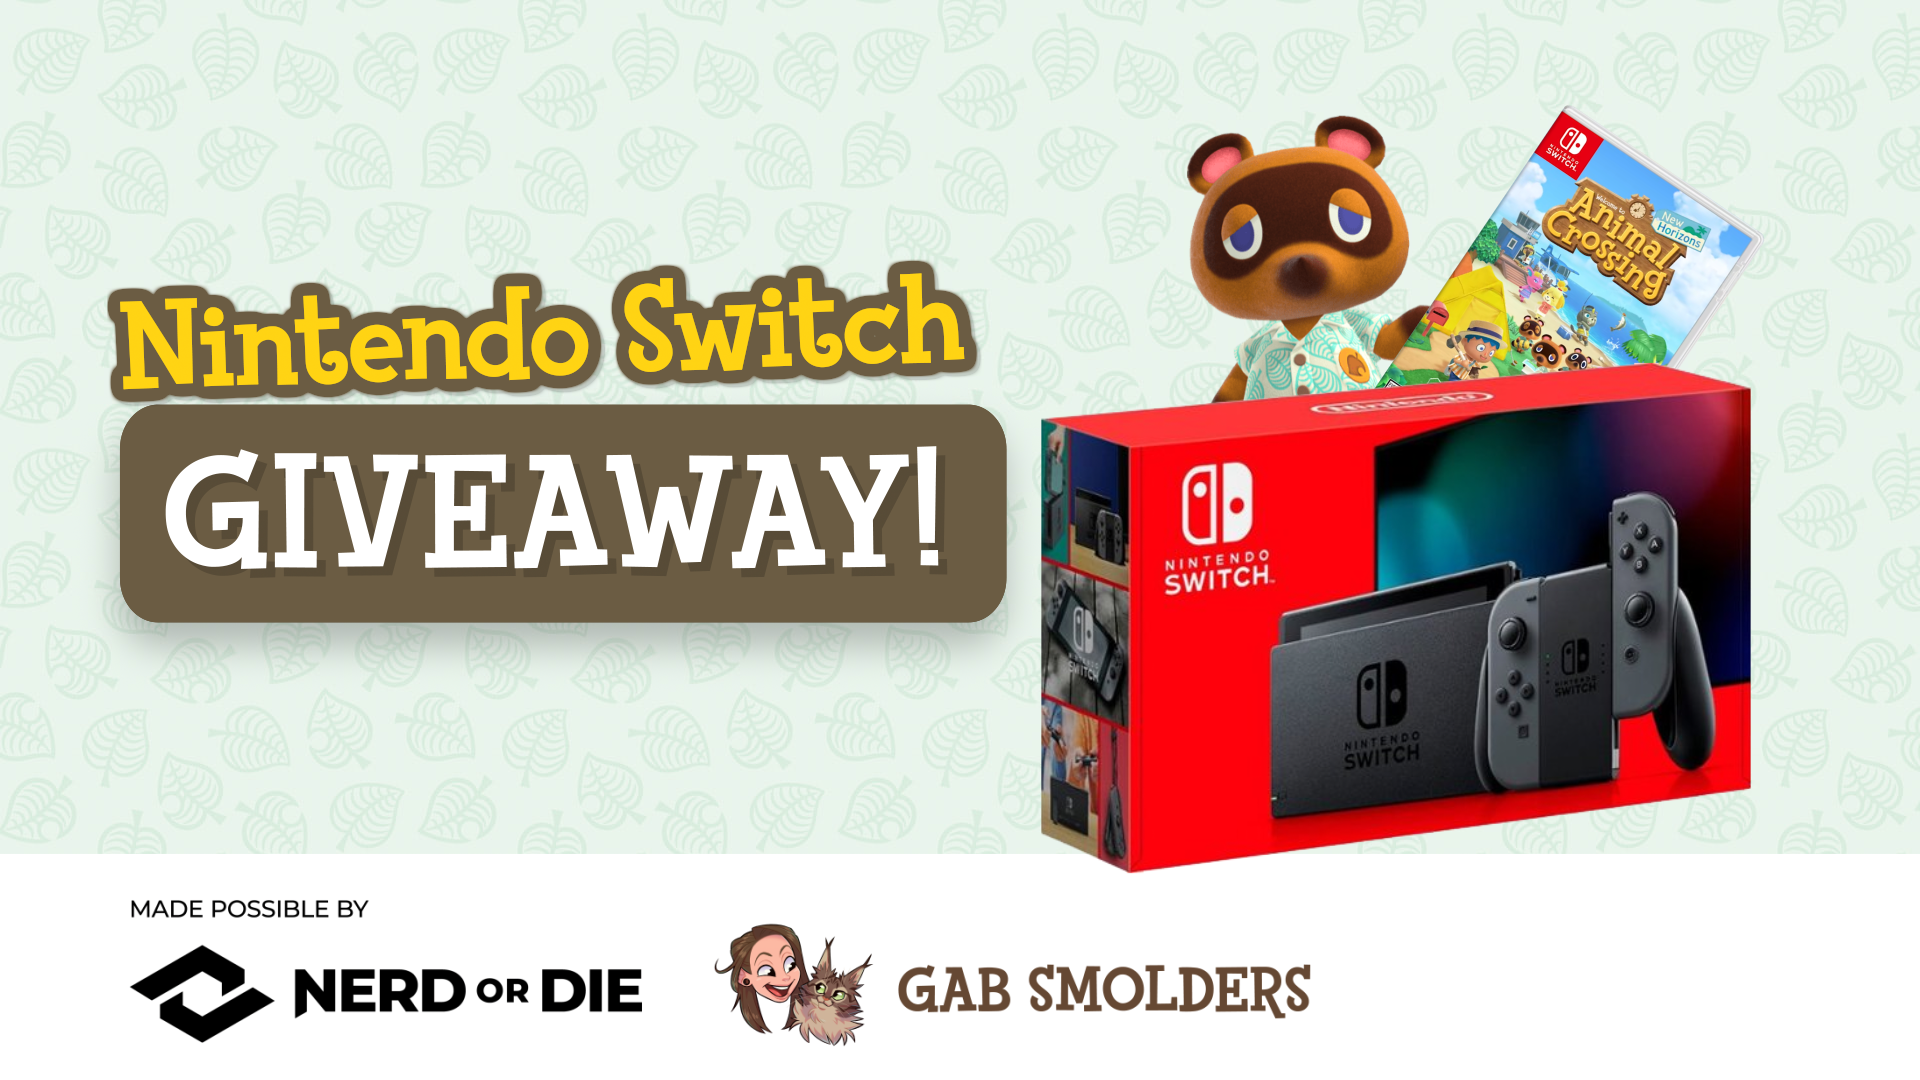 Win a Nintendo Switch with Animal Crossing Giveaway Giveaway Image